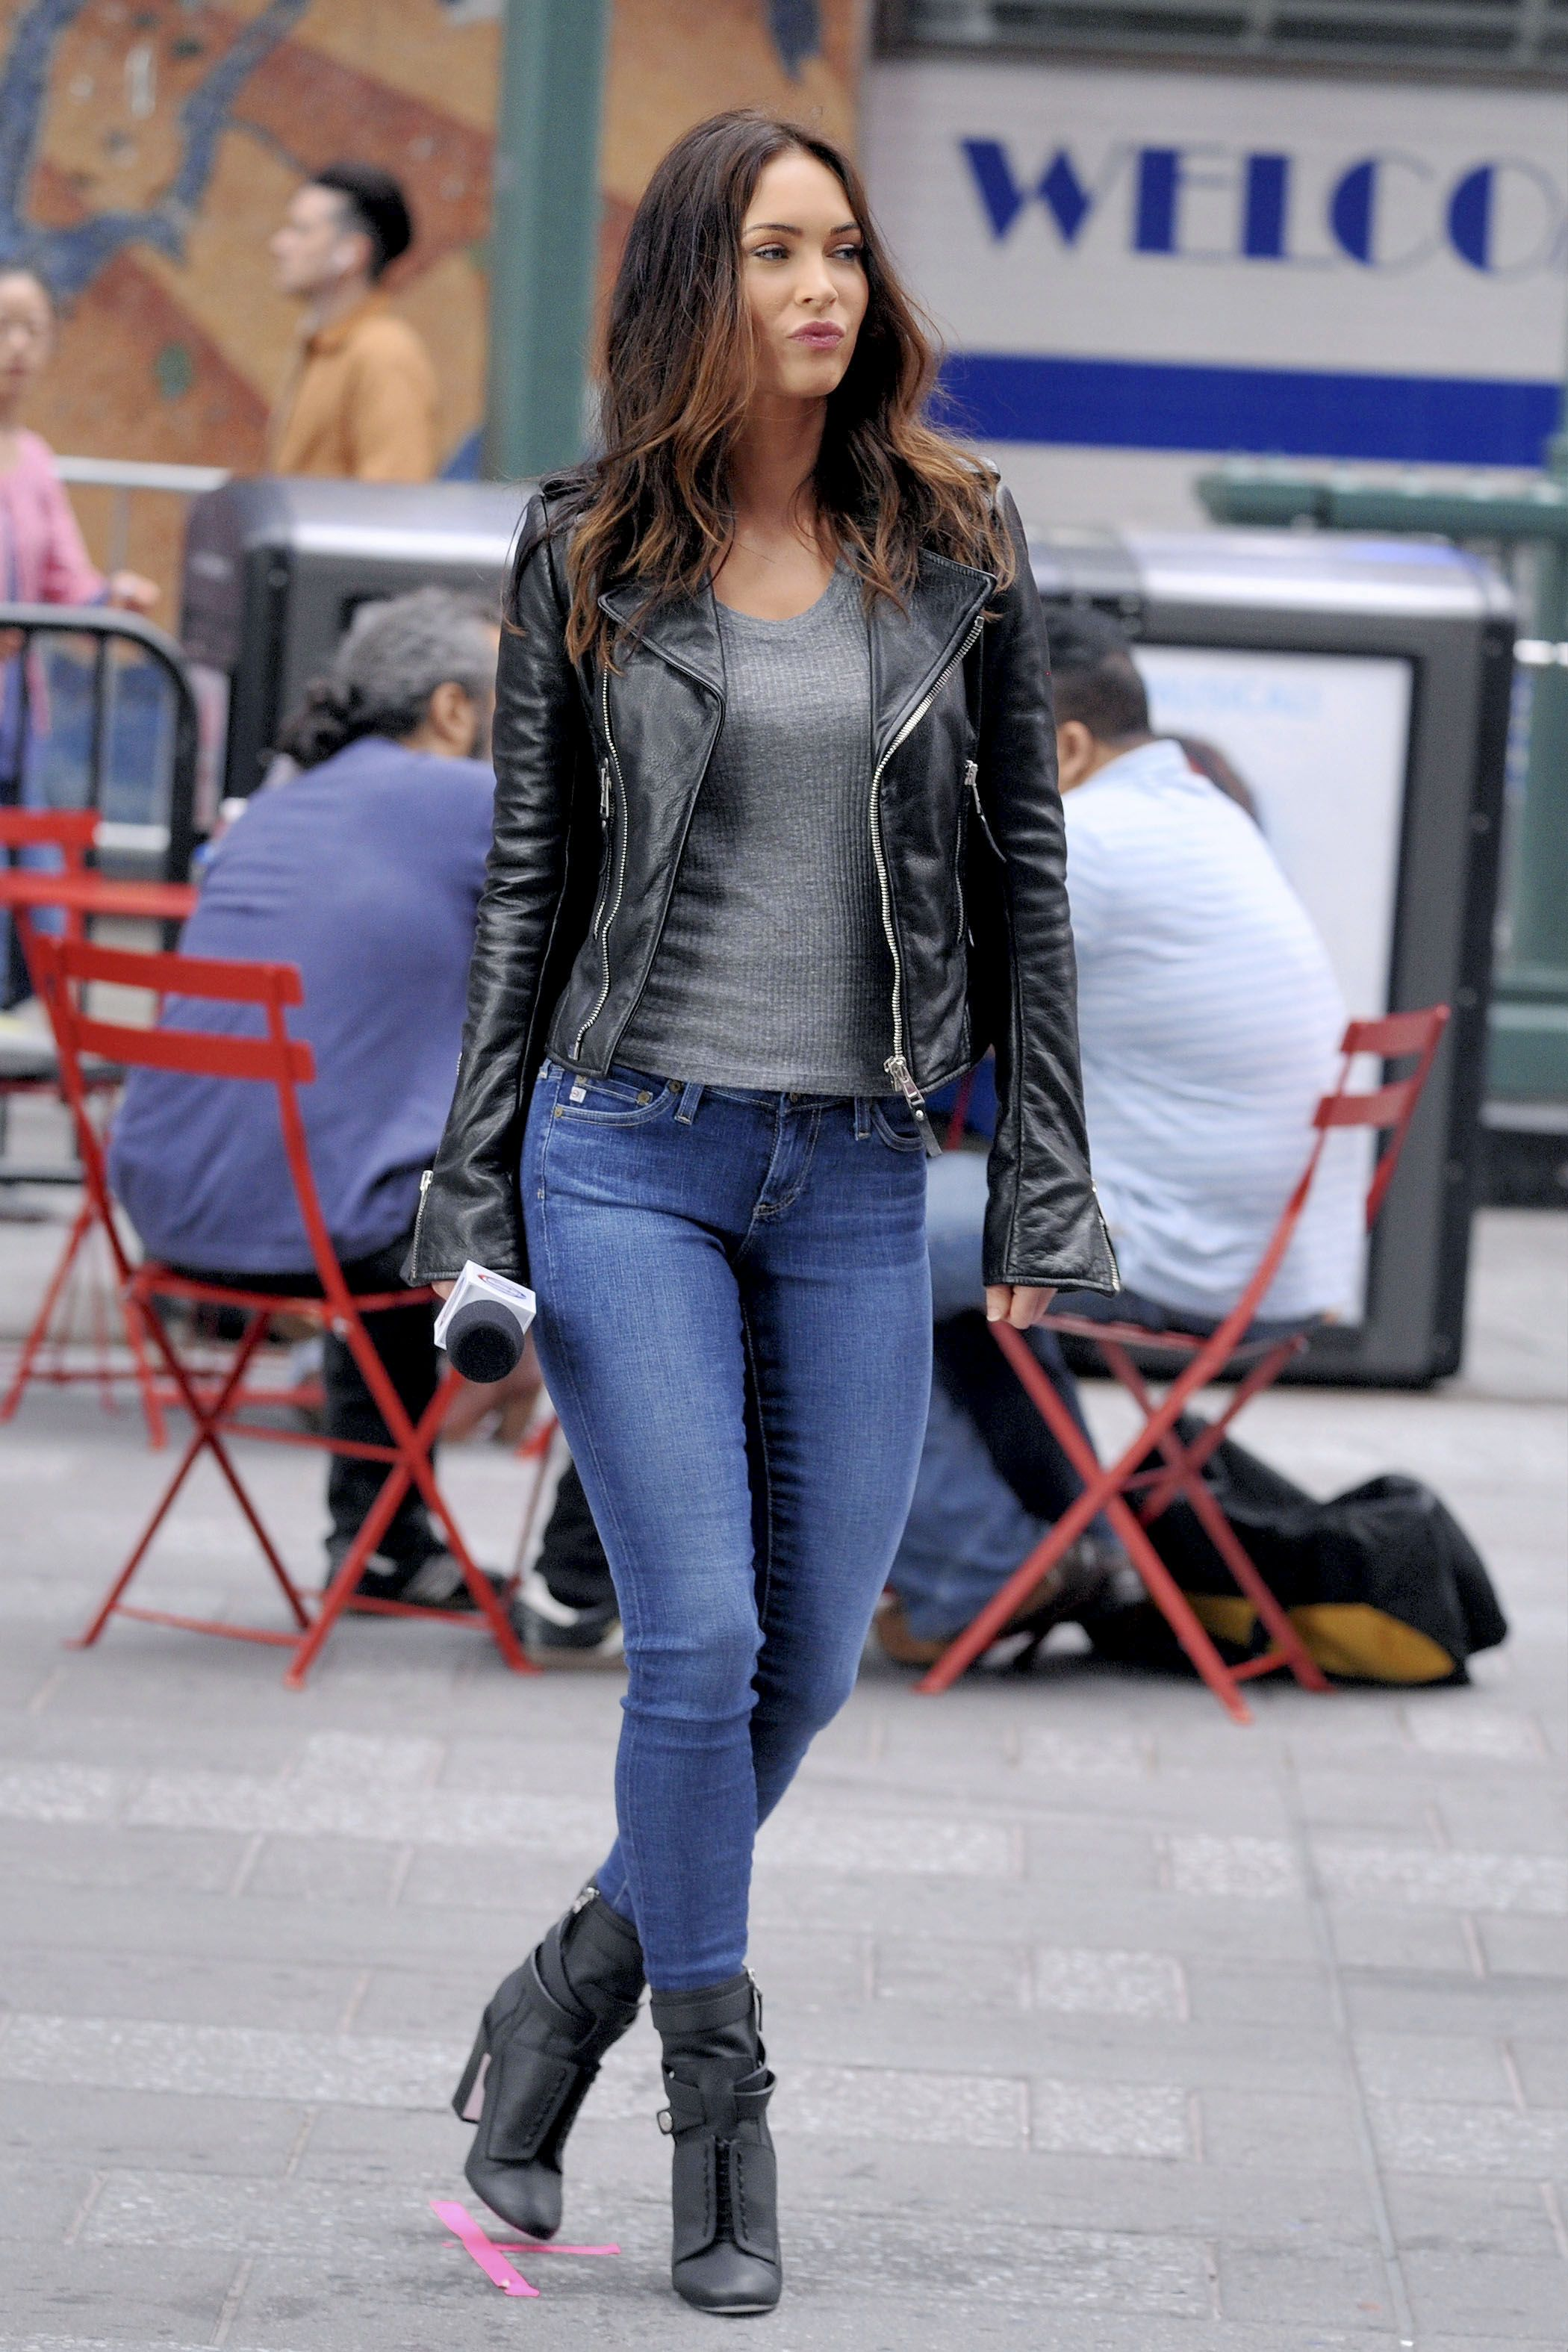 Megan Fox filming 'Teenage Mutant Ninja Turtles 2' in Times Square'on May